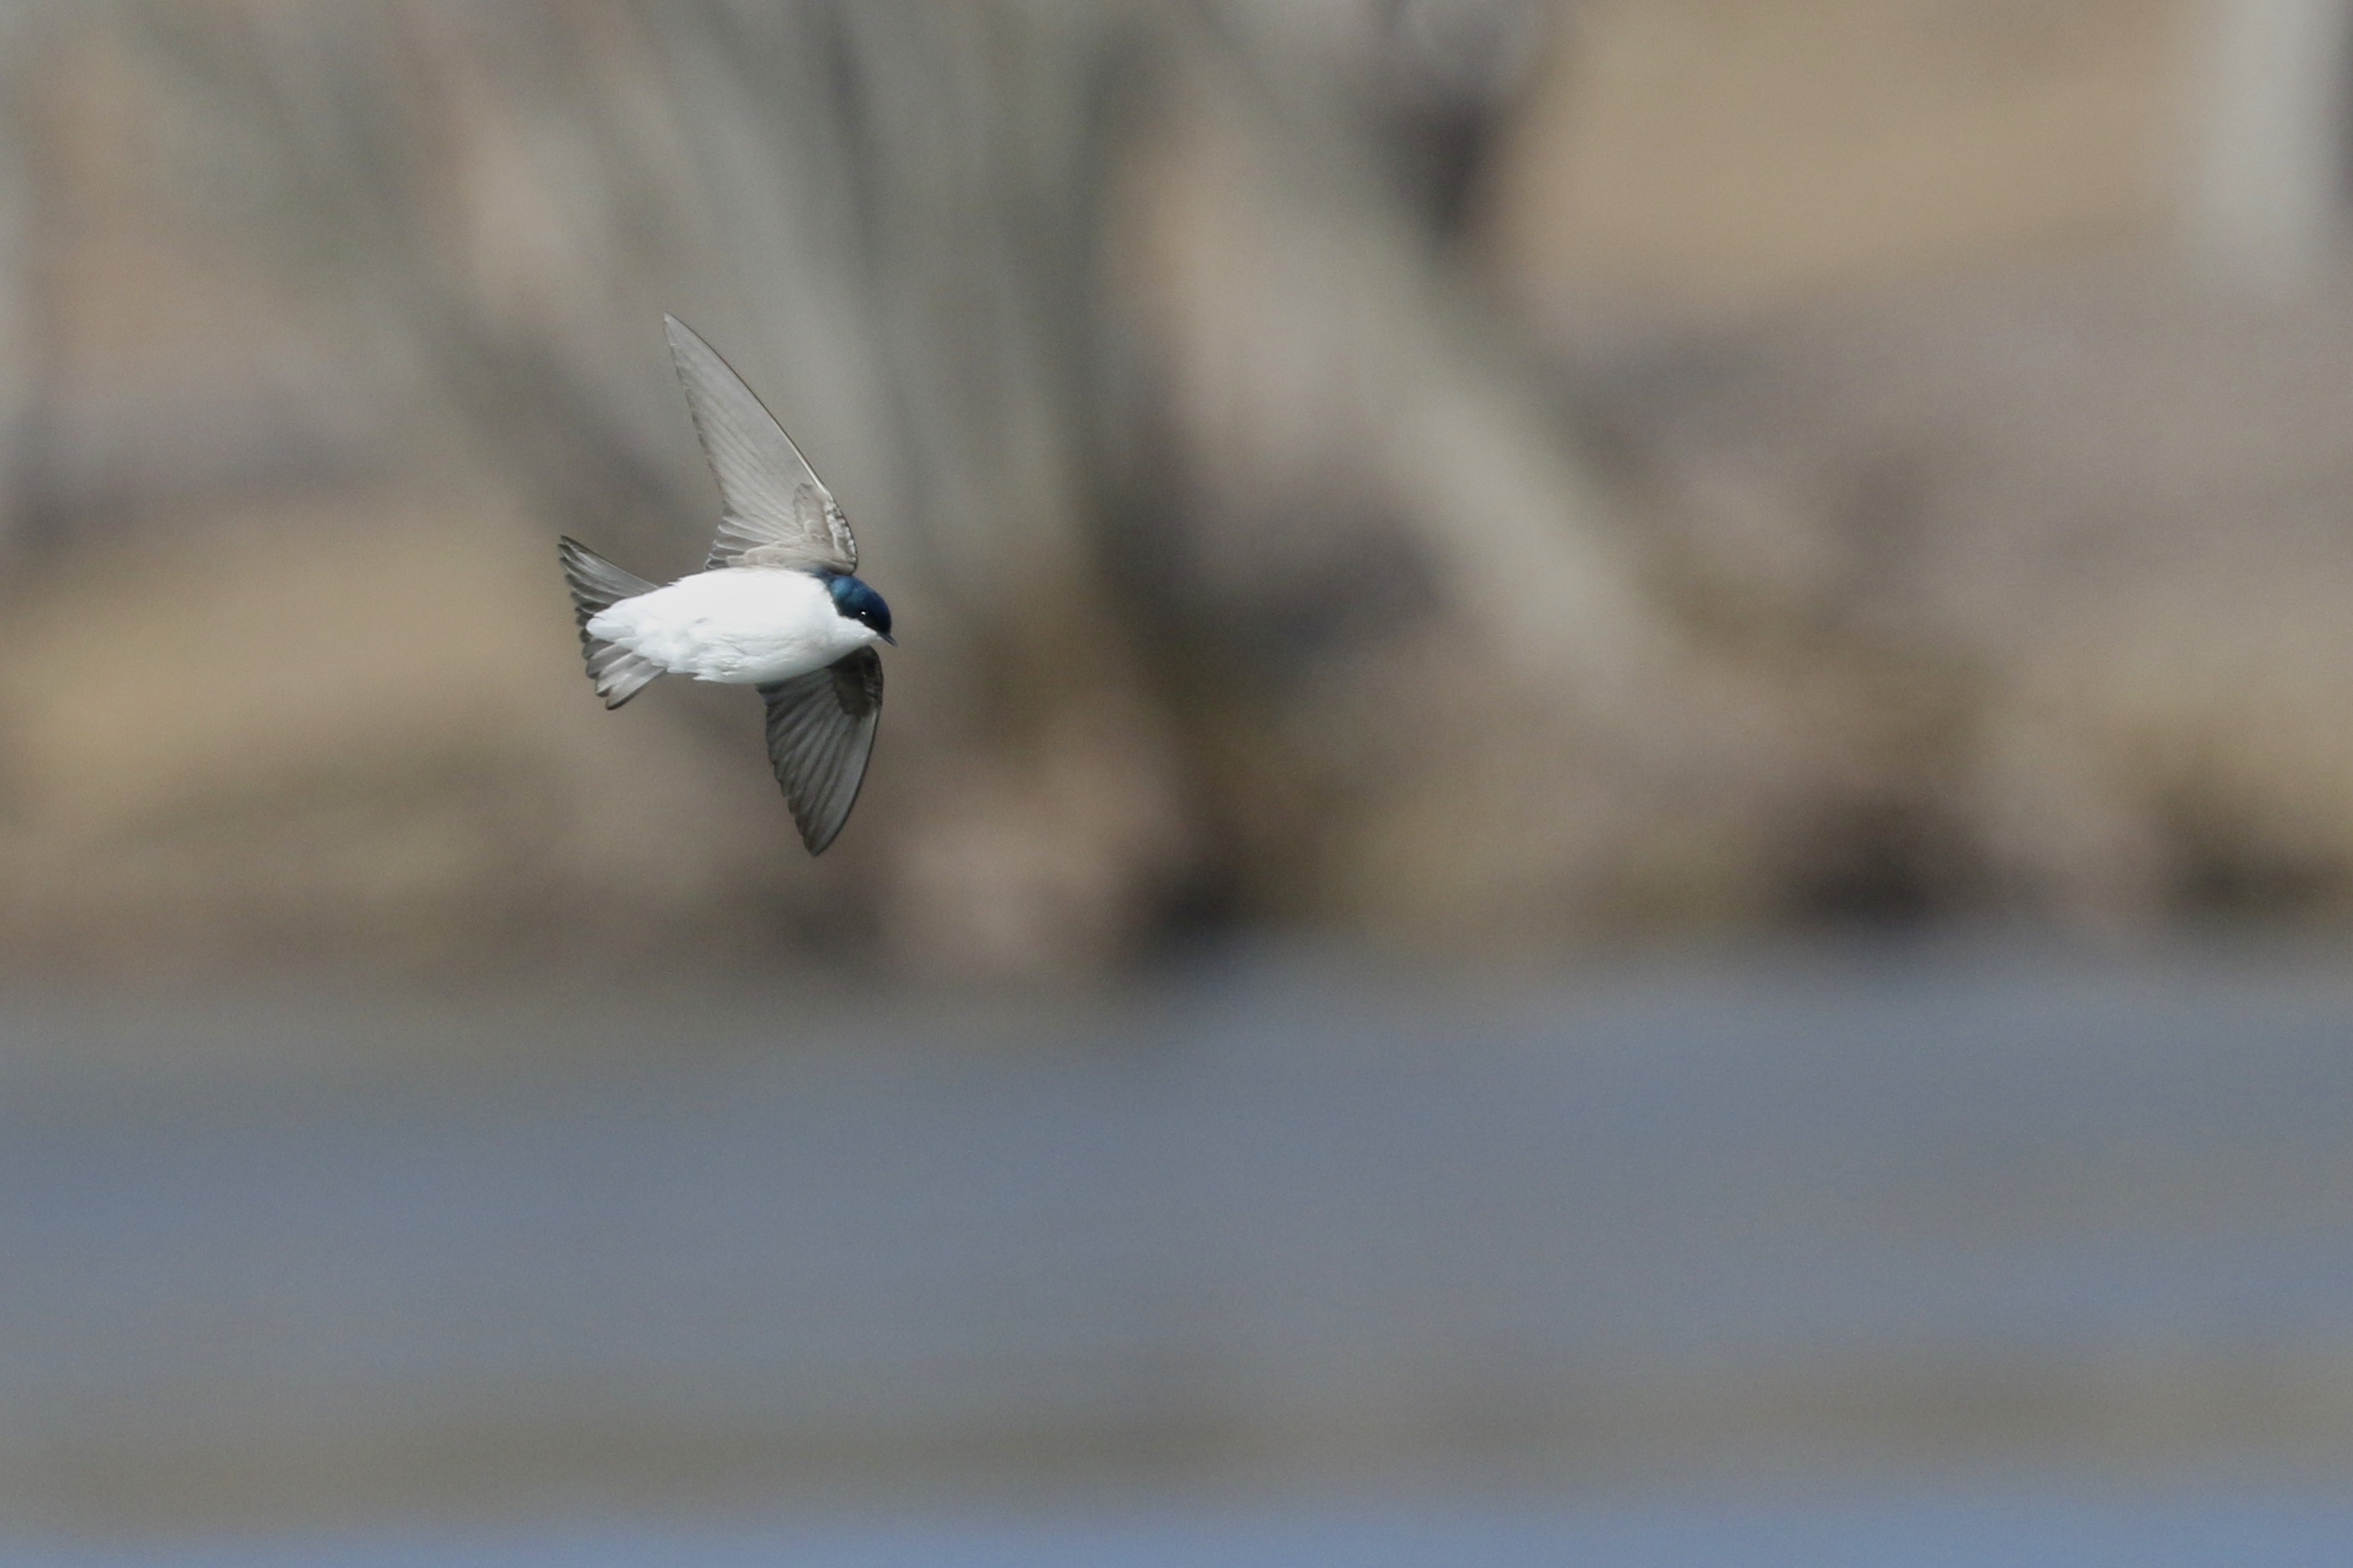 ~It was great to not only see the Tree Swallows, but to also get a decent photo of one. Laurel Grove Cemetery, 3/28/15.~